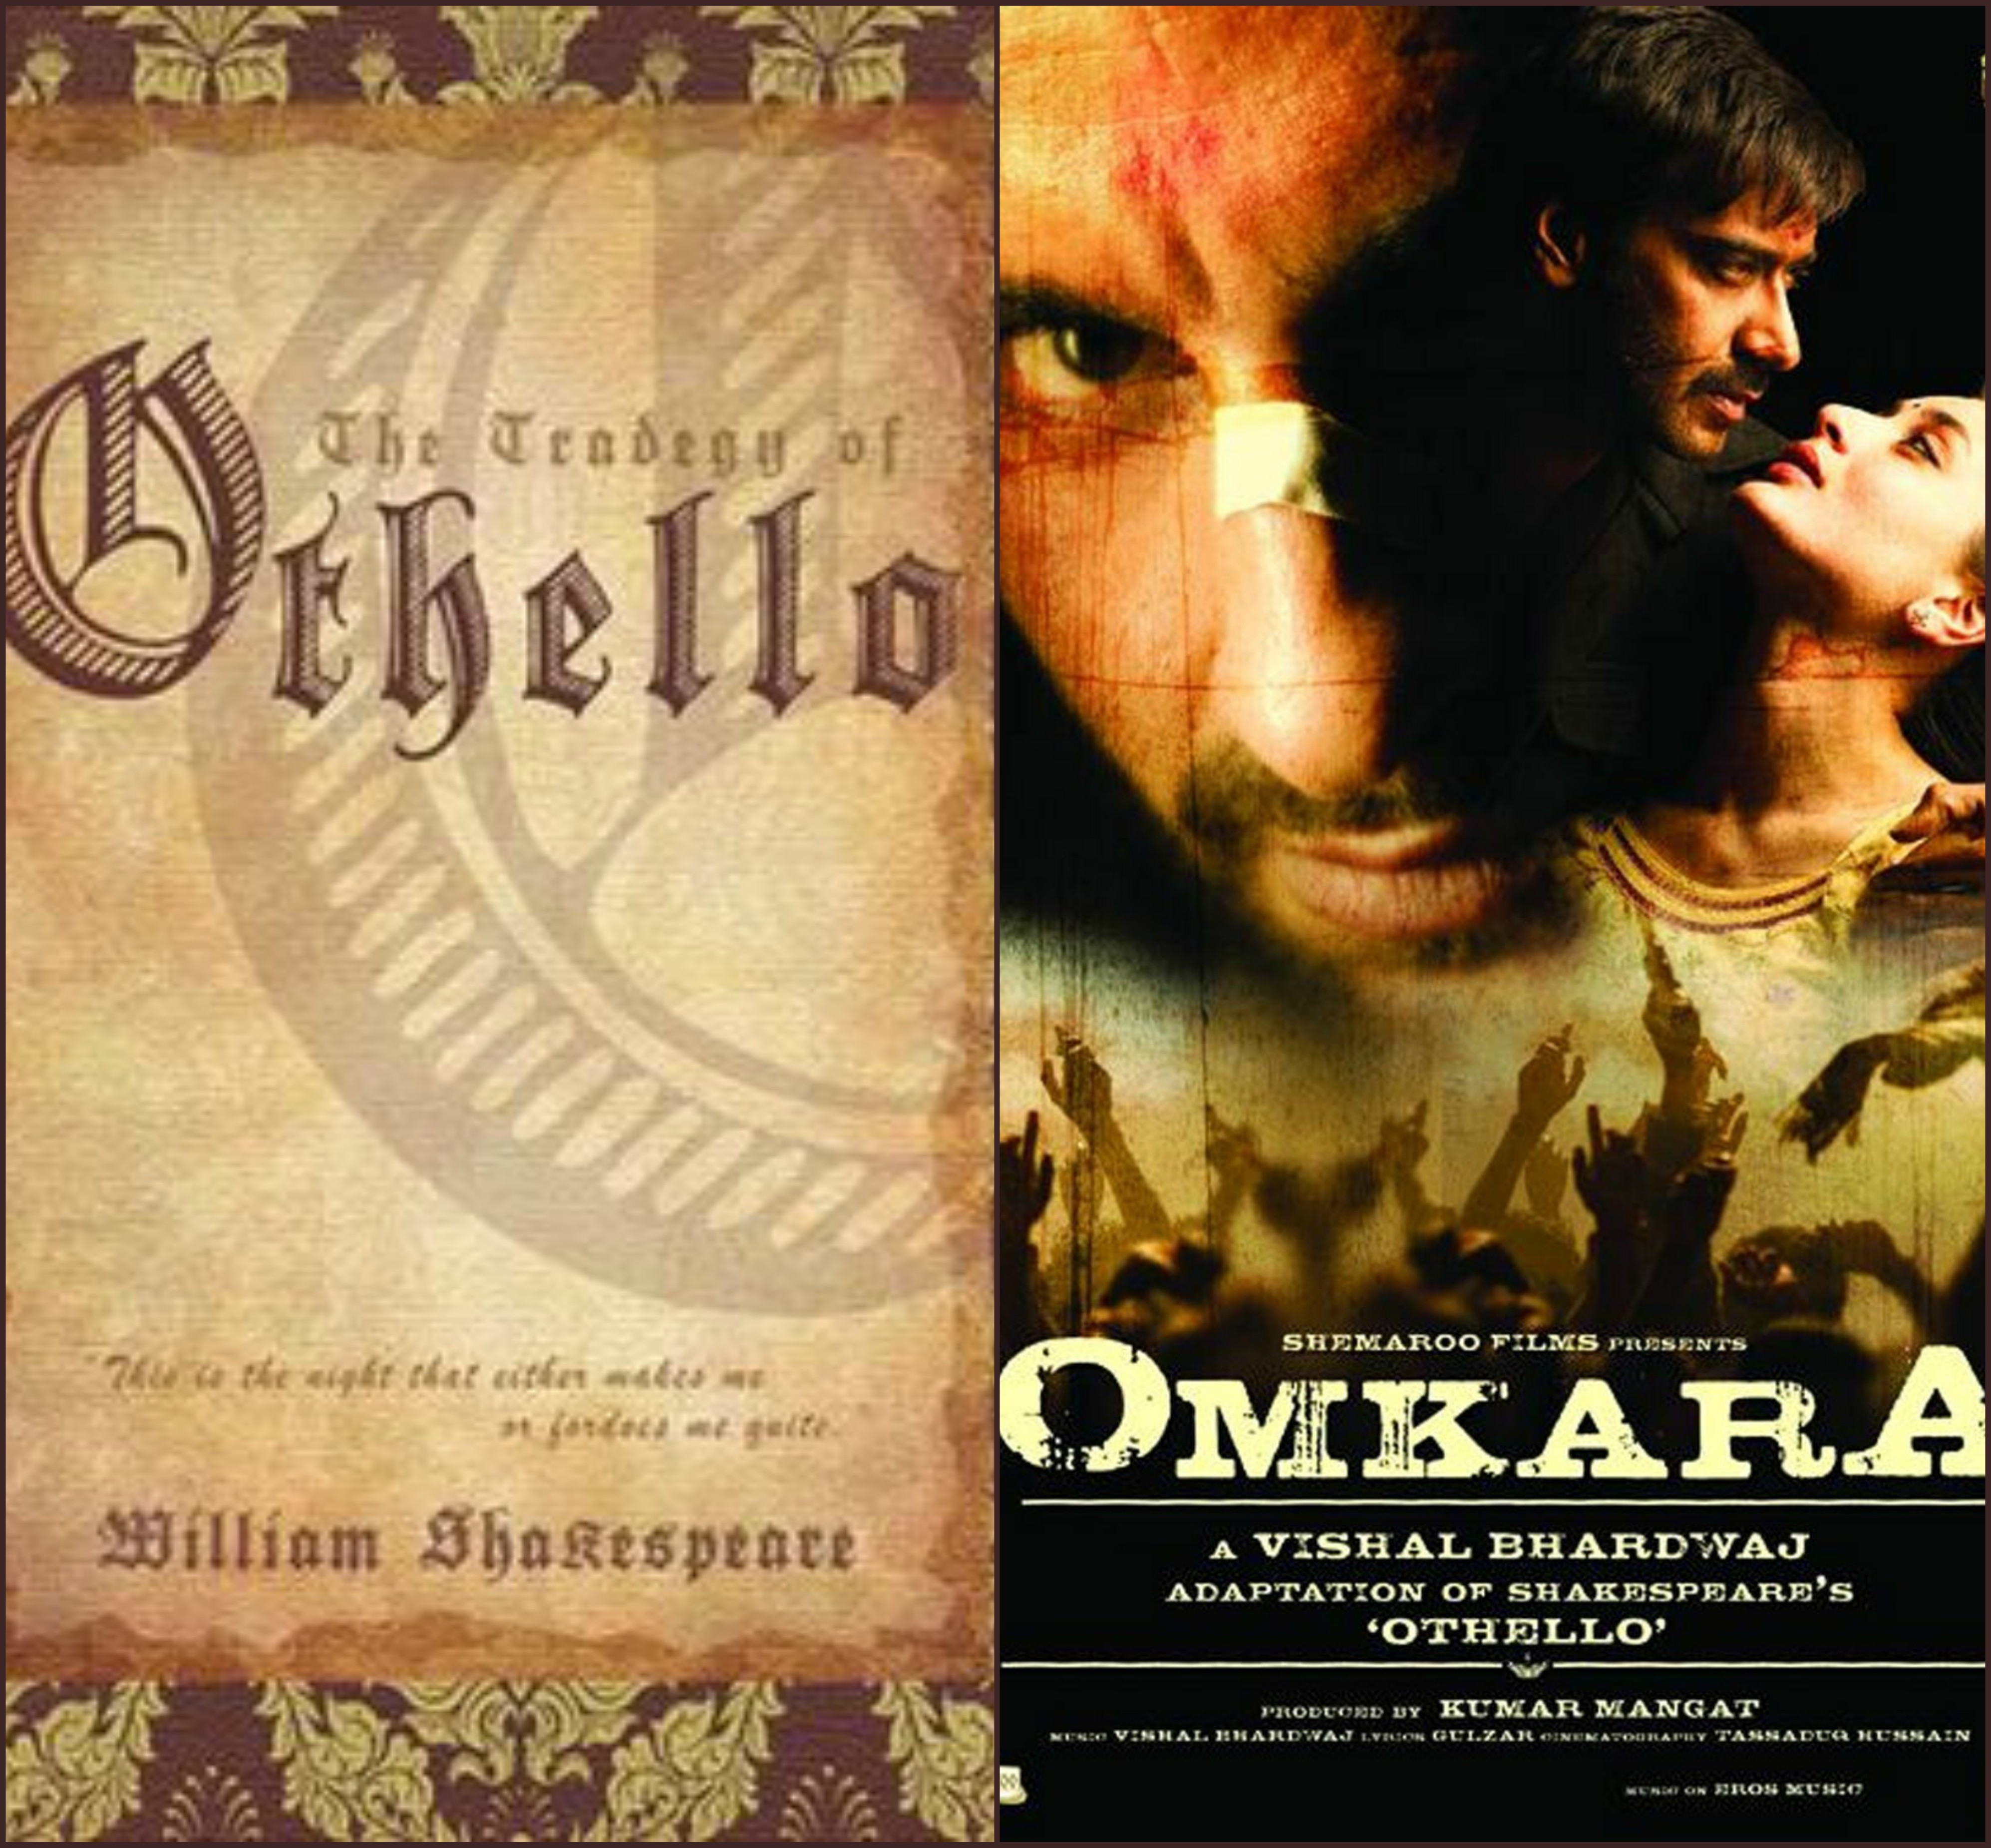 a comprehensive analysis of the movie adaptation of othello Othello, an adaptation ^ see отелло at the internet movie stanislavski also introduced into the process a period of discussion and detailed analysis of.